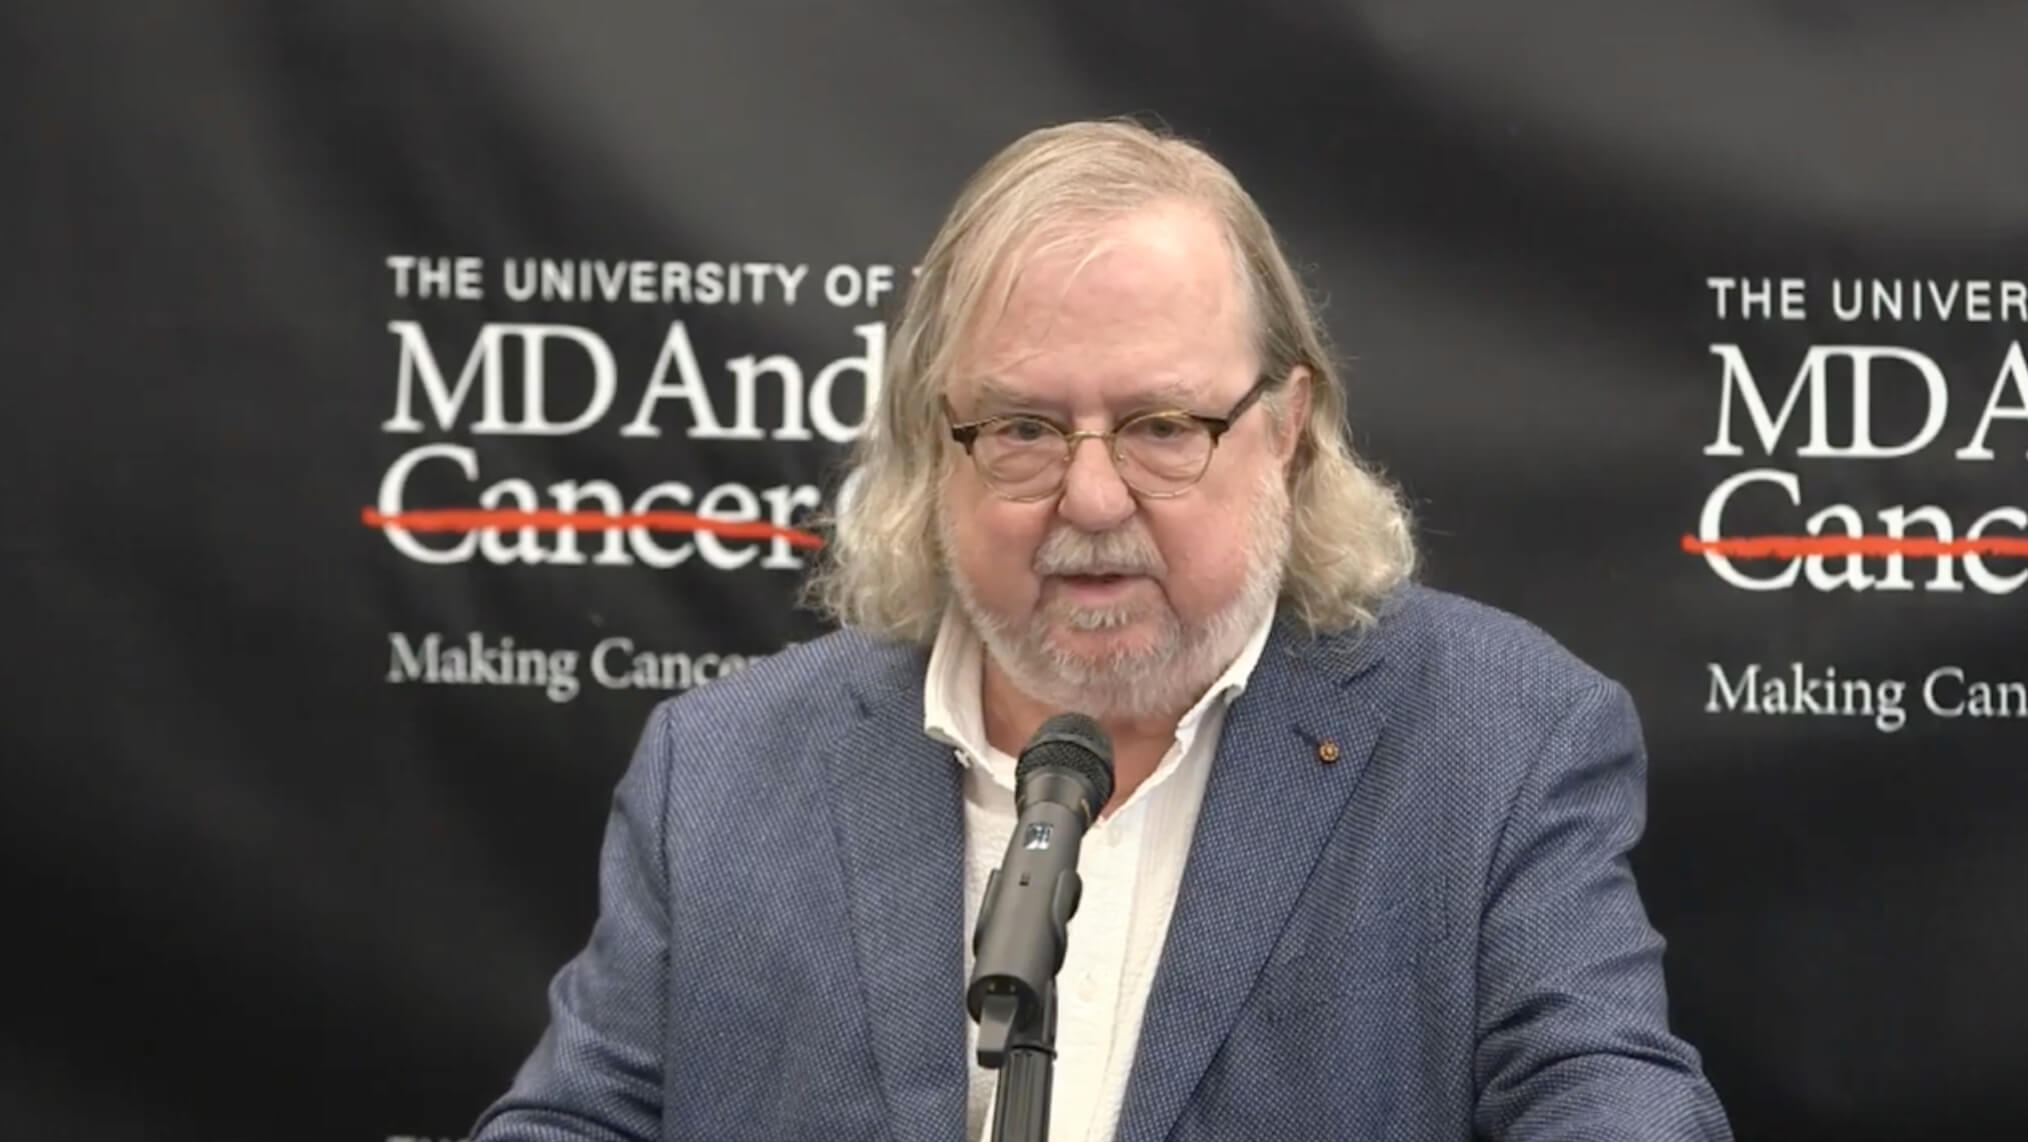 MD Anderson immunologist James P. Allison, Ph.D., reacts to receiving the 2018 Nobel Prize in Physiology or Medicine during a news conference on Oct. 1, 2018 in New York City where he was attending a cancer immunotherapy conference. (MD Anderson live feed)